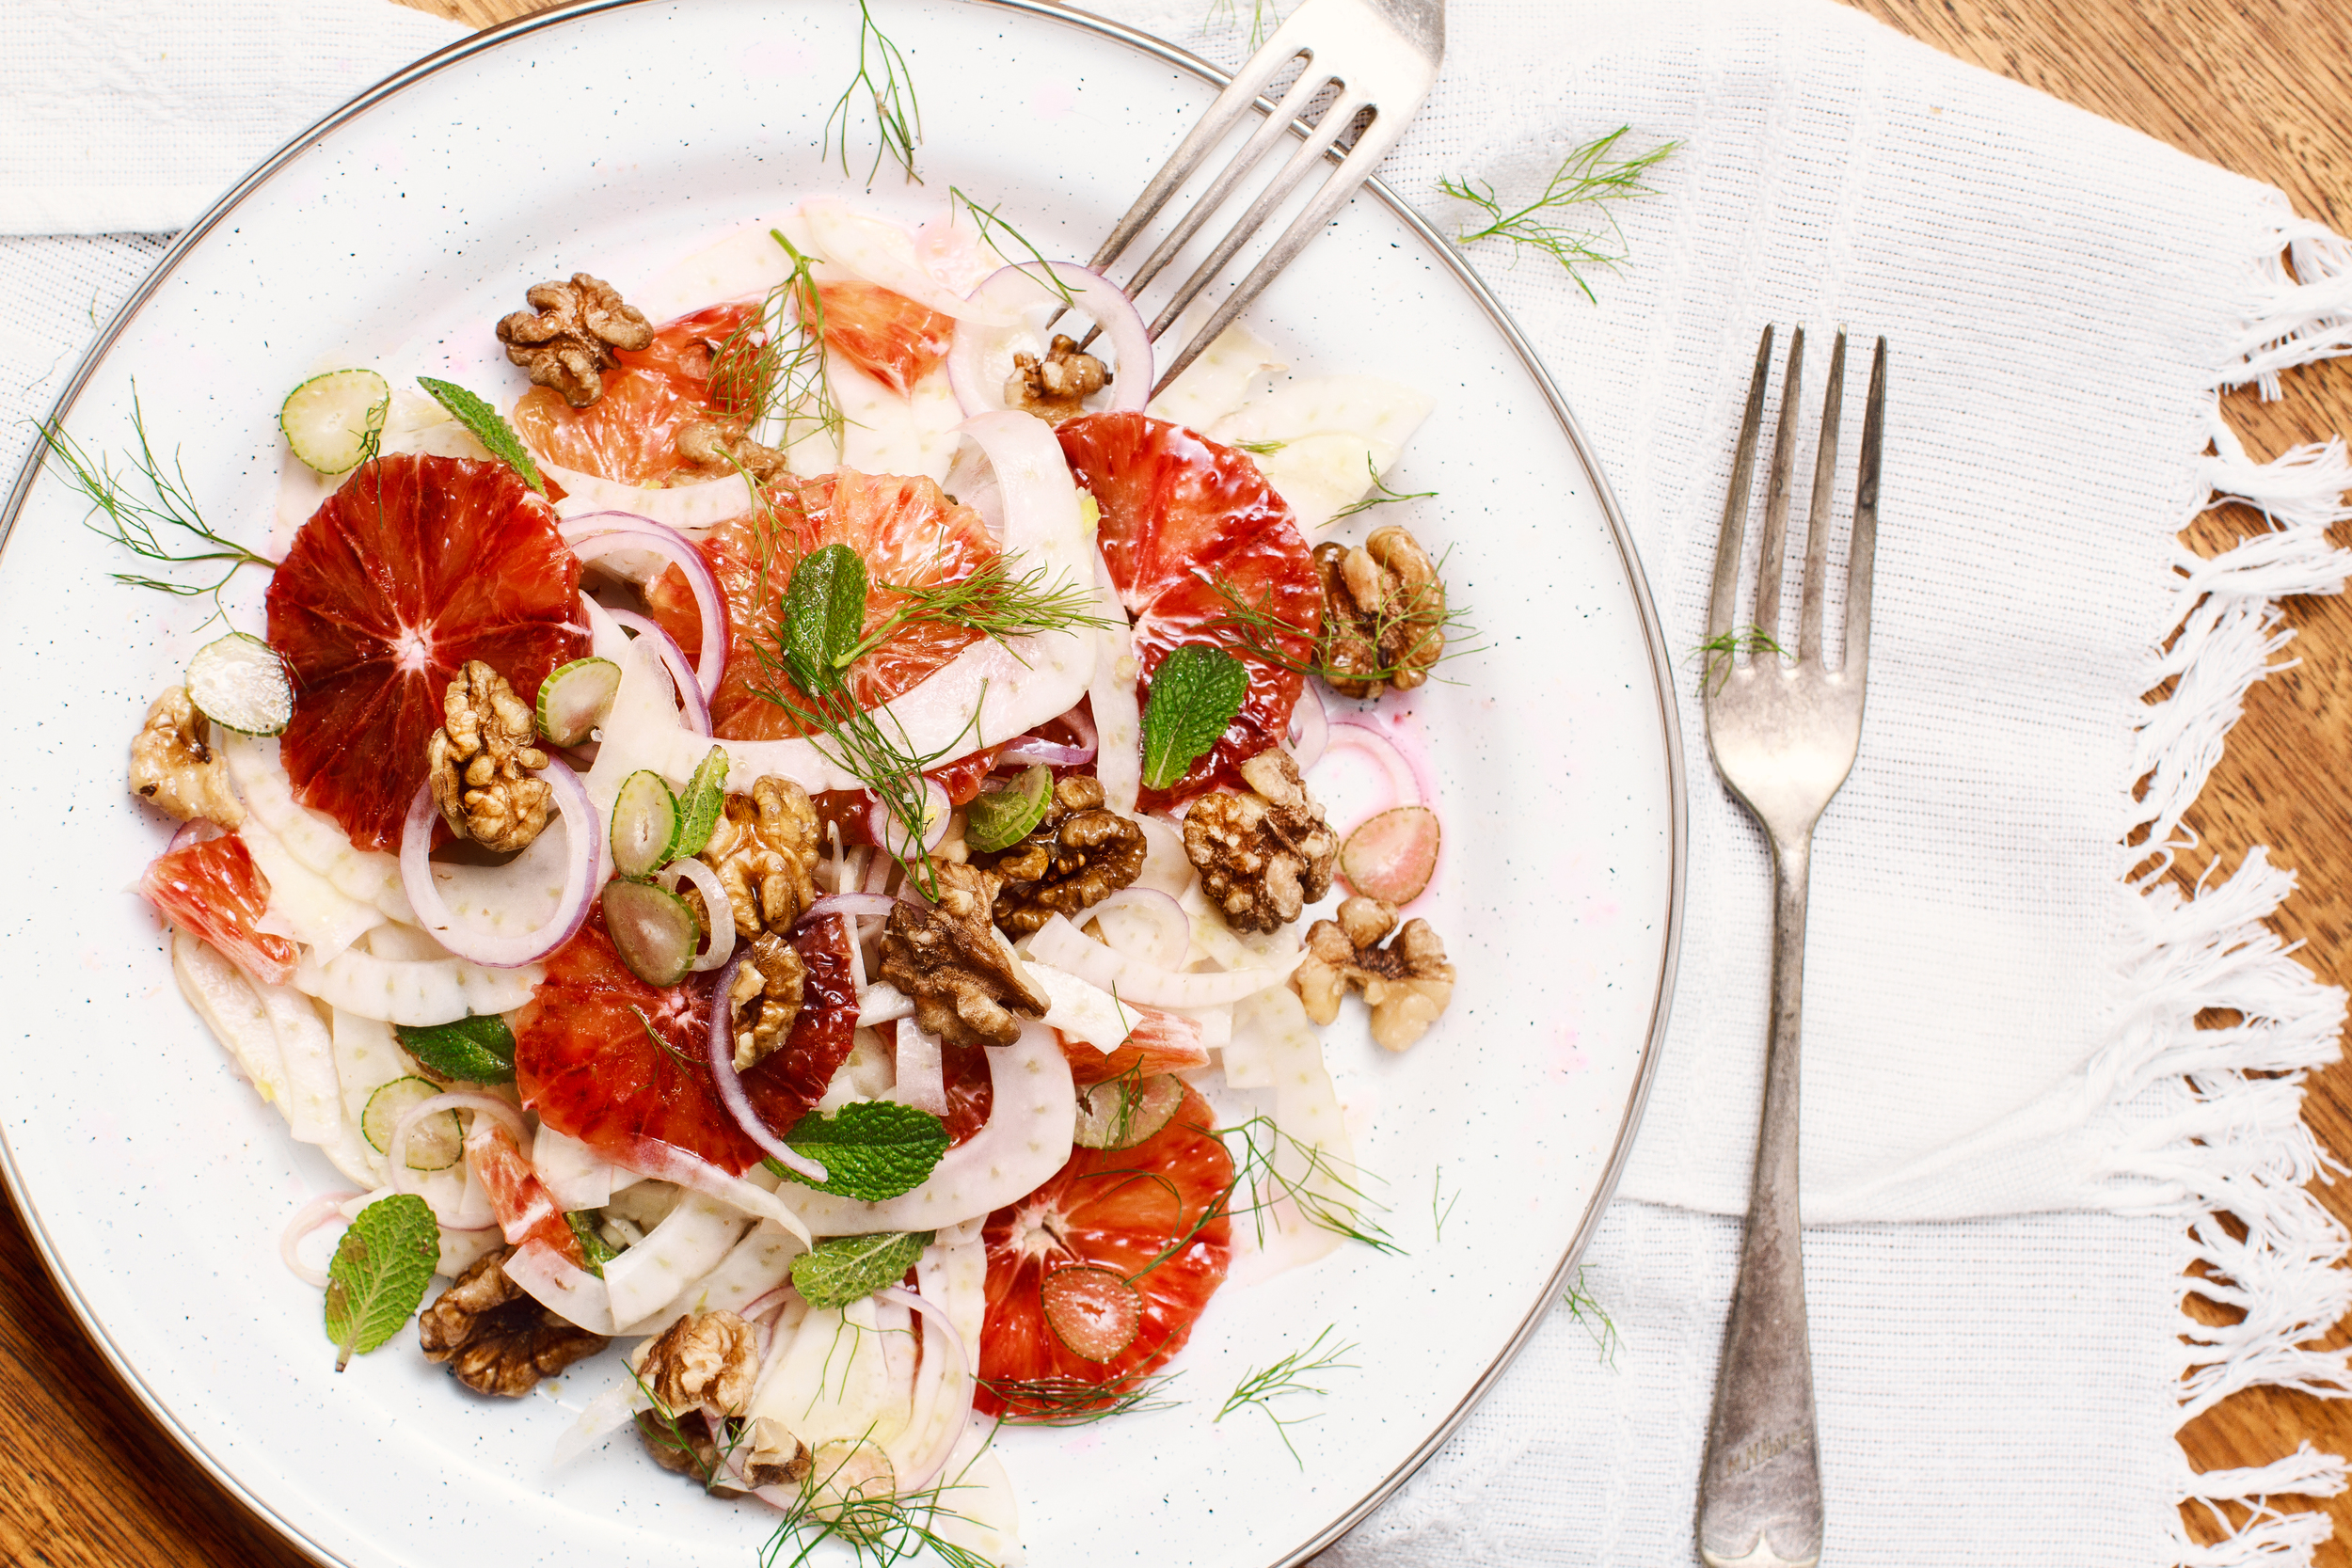 Fennel and Blood Orange Salad. Recipe appeared originally in  Yum. Gluten Free Magazine  Oct Issue.  Recipe and styling by   Cle-ann  , photo by   Hugh Adams  .